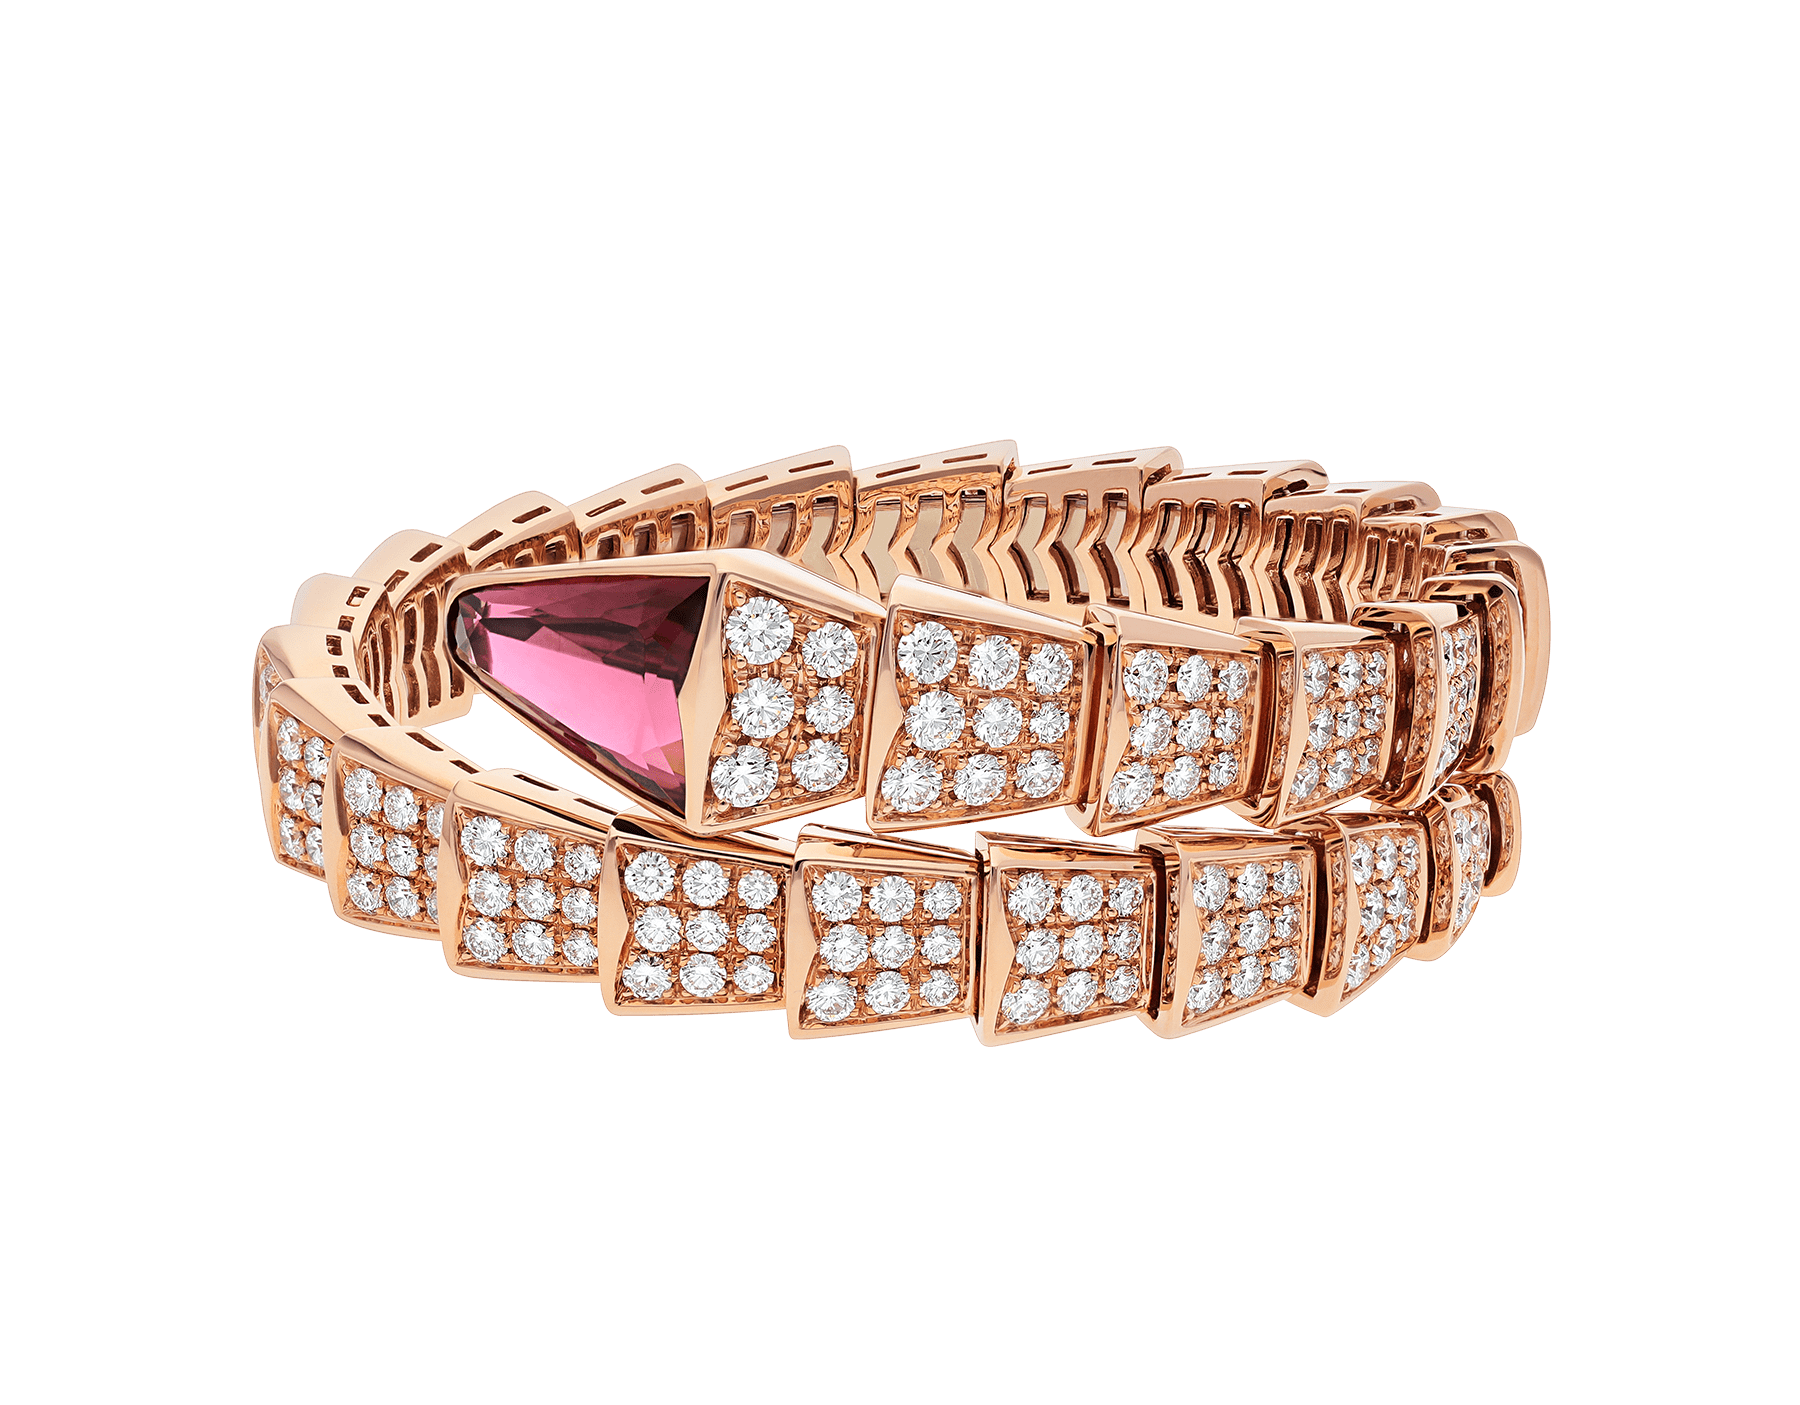 Serpenti one-coil bracelet in 18 kt rose gold, set with full pavé diamonds and a rubellite on the head. BR856126 image 2